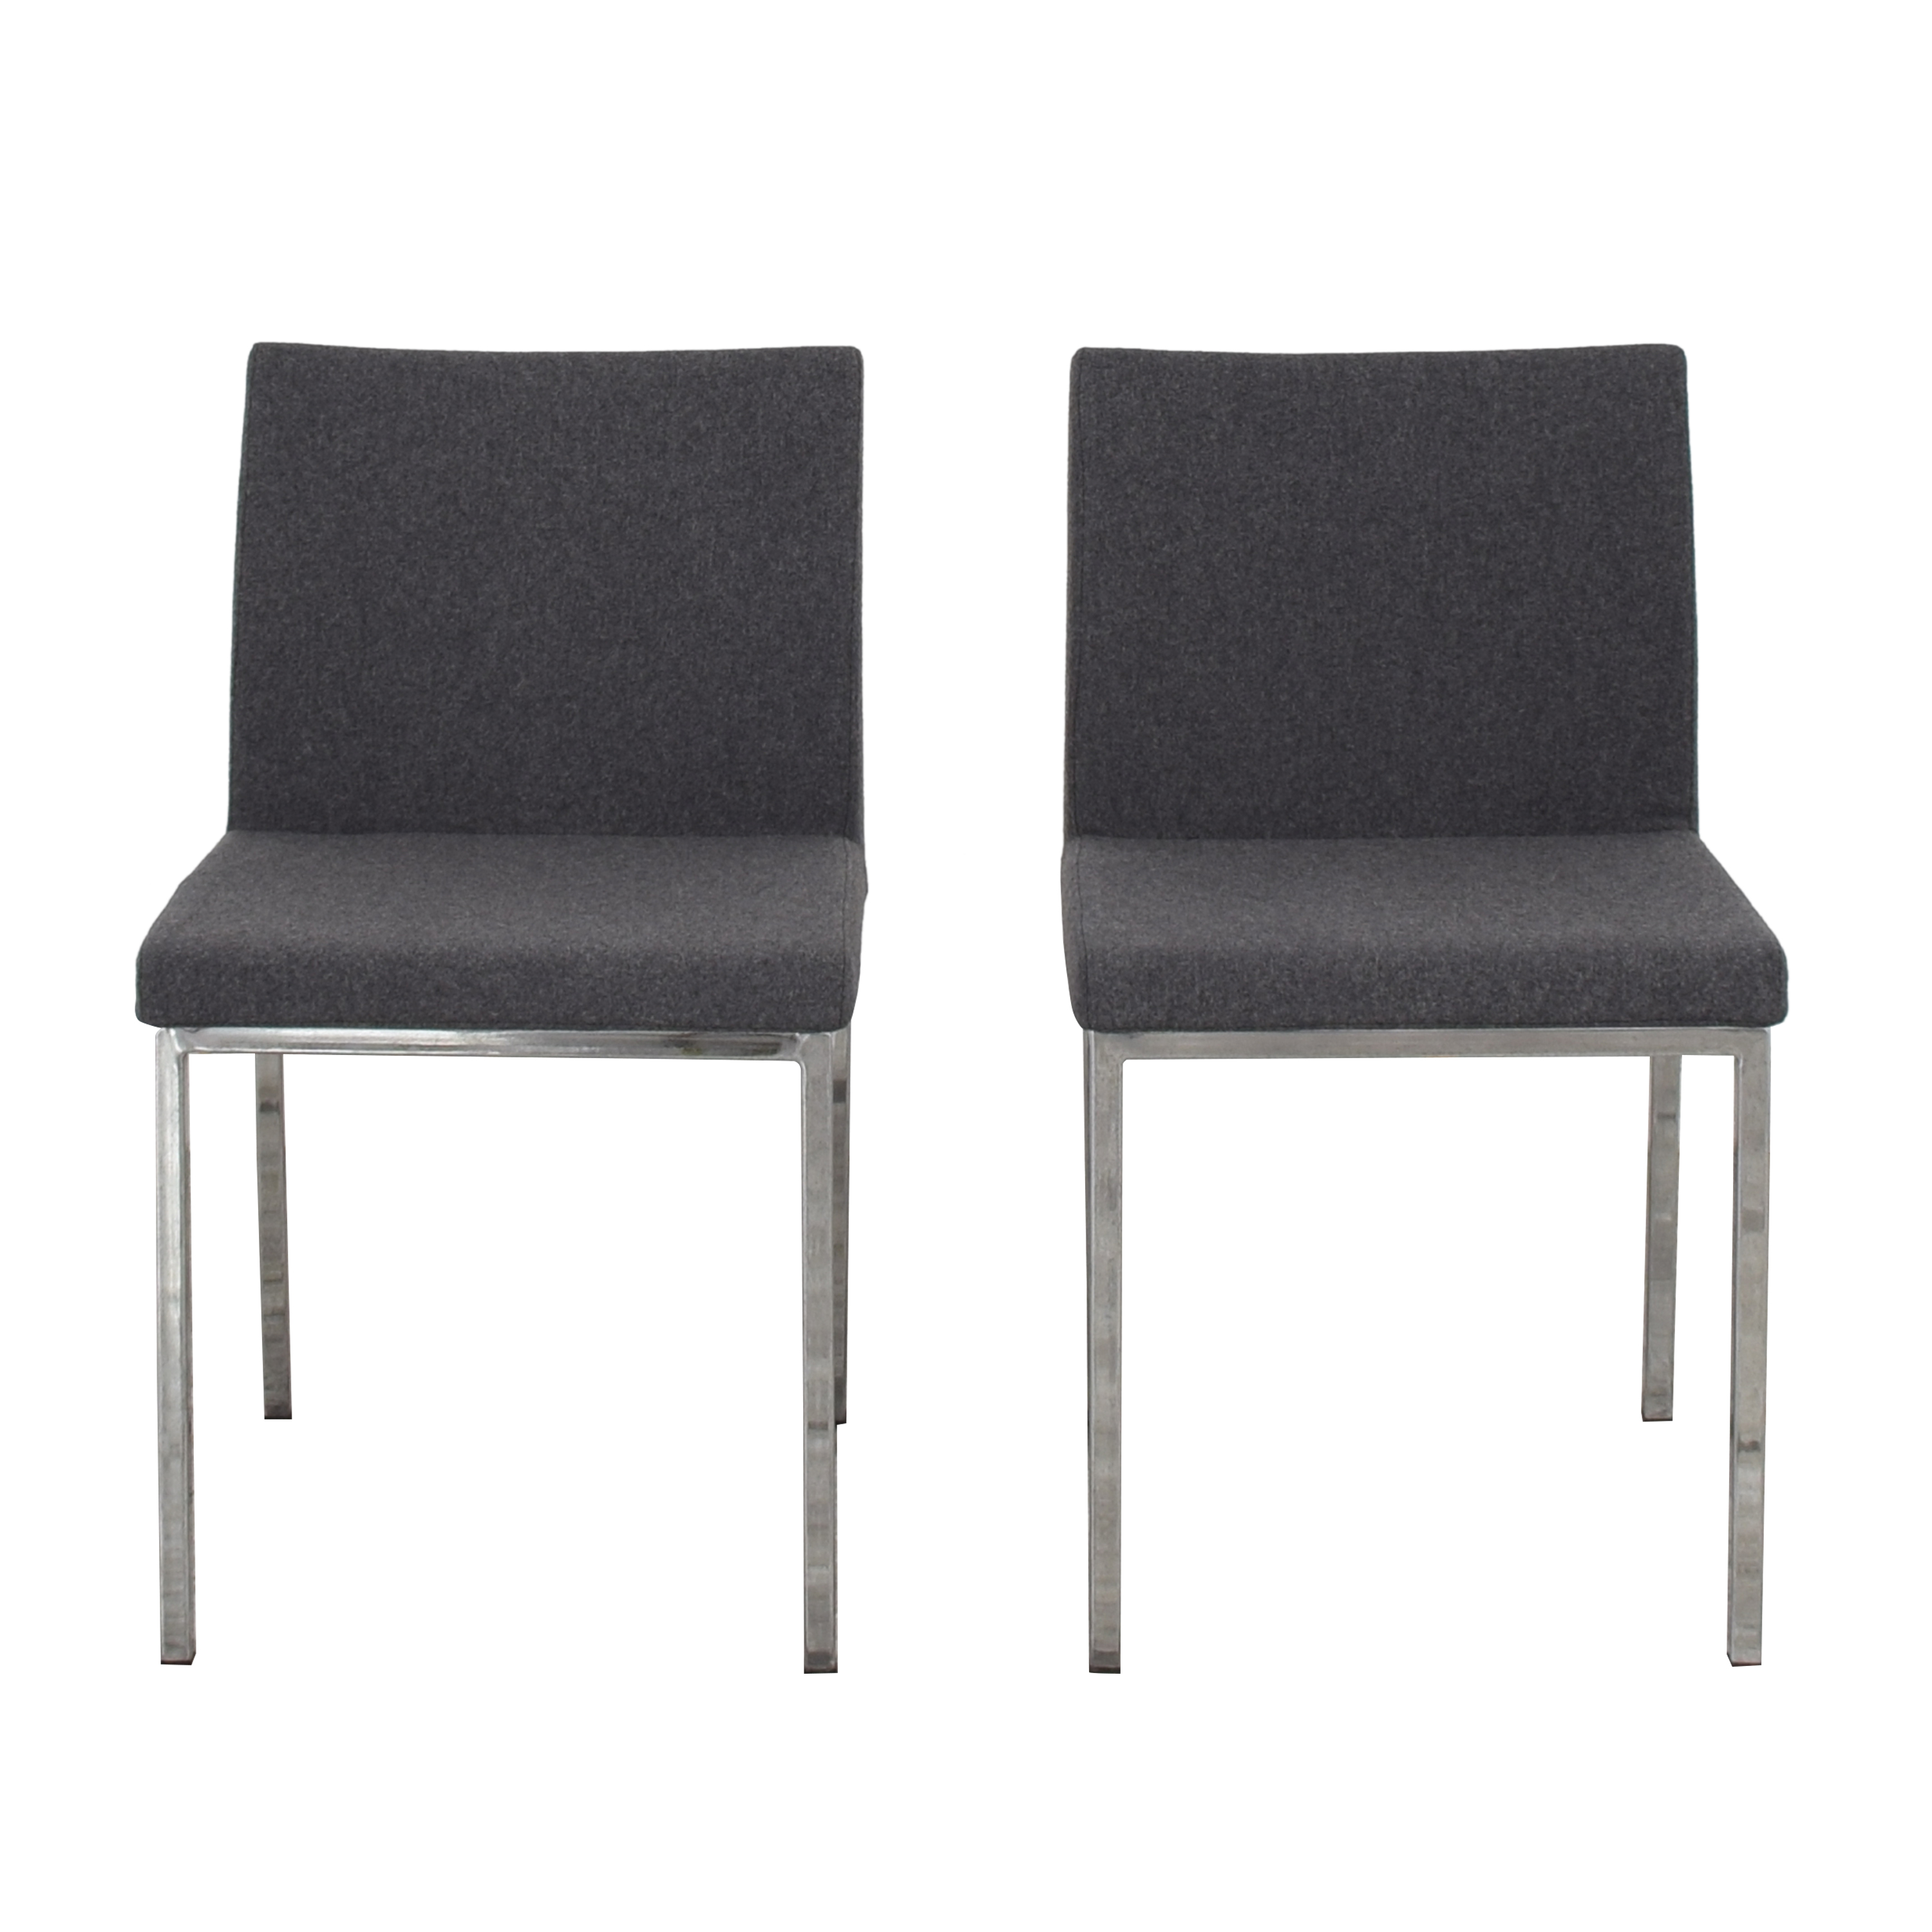 Crate & Barrel Crate & Barrel Upholstered Dining Chairs used